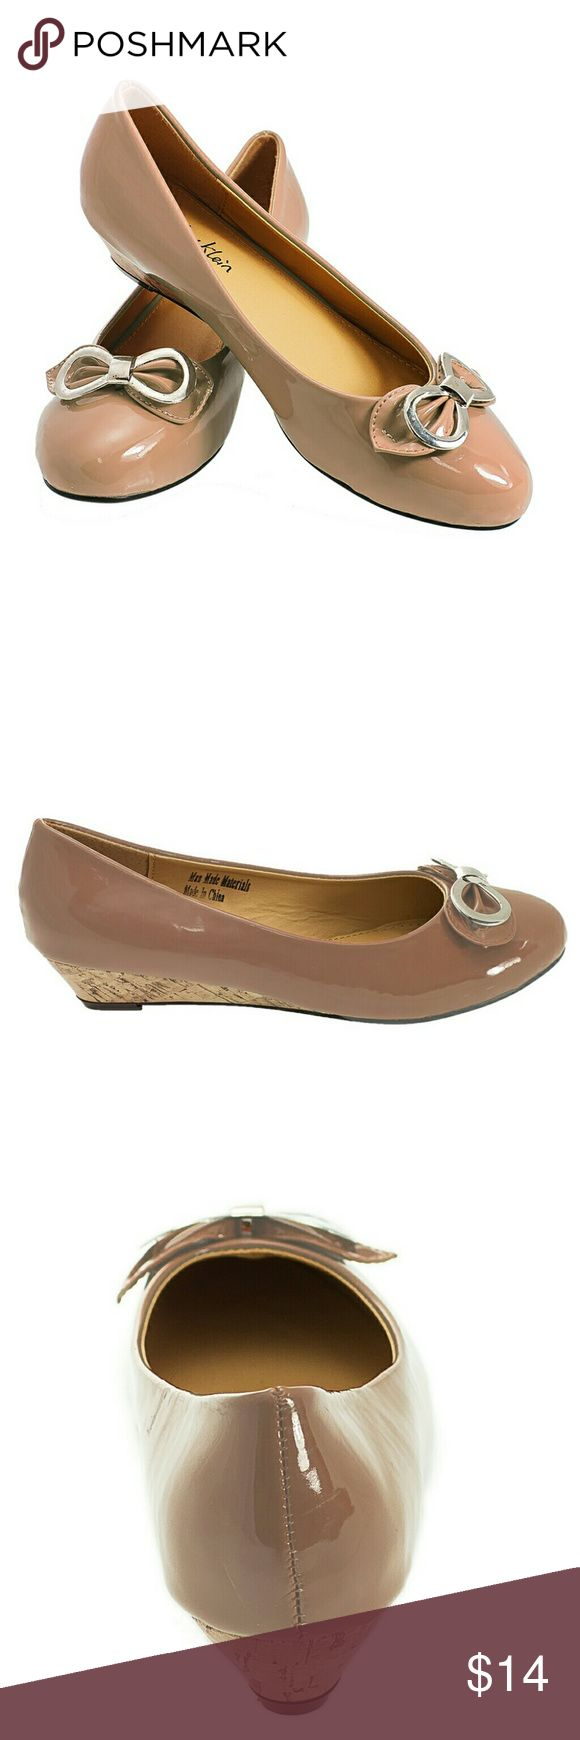 "Tory Klein Women Bow Wedge Pumps, b-1350, Beige Brand new glossy Tory K woman ballerina pumps with a silvery metal Moebius strip over the bow in the front. Soft sole. Small comfortable 1 inch wedge and ribbed bottom sole for extra traction. A true statement in ladies shoes fashion!  Larger sizes run small! Measurements: size 9 measures 10 inches, all half sizes are in 1/4"" increments of each other. Tory K  Shoes Flats & Loafers"